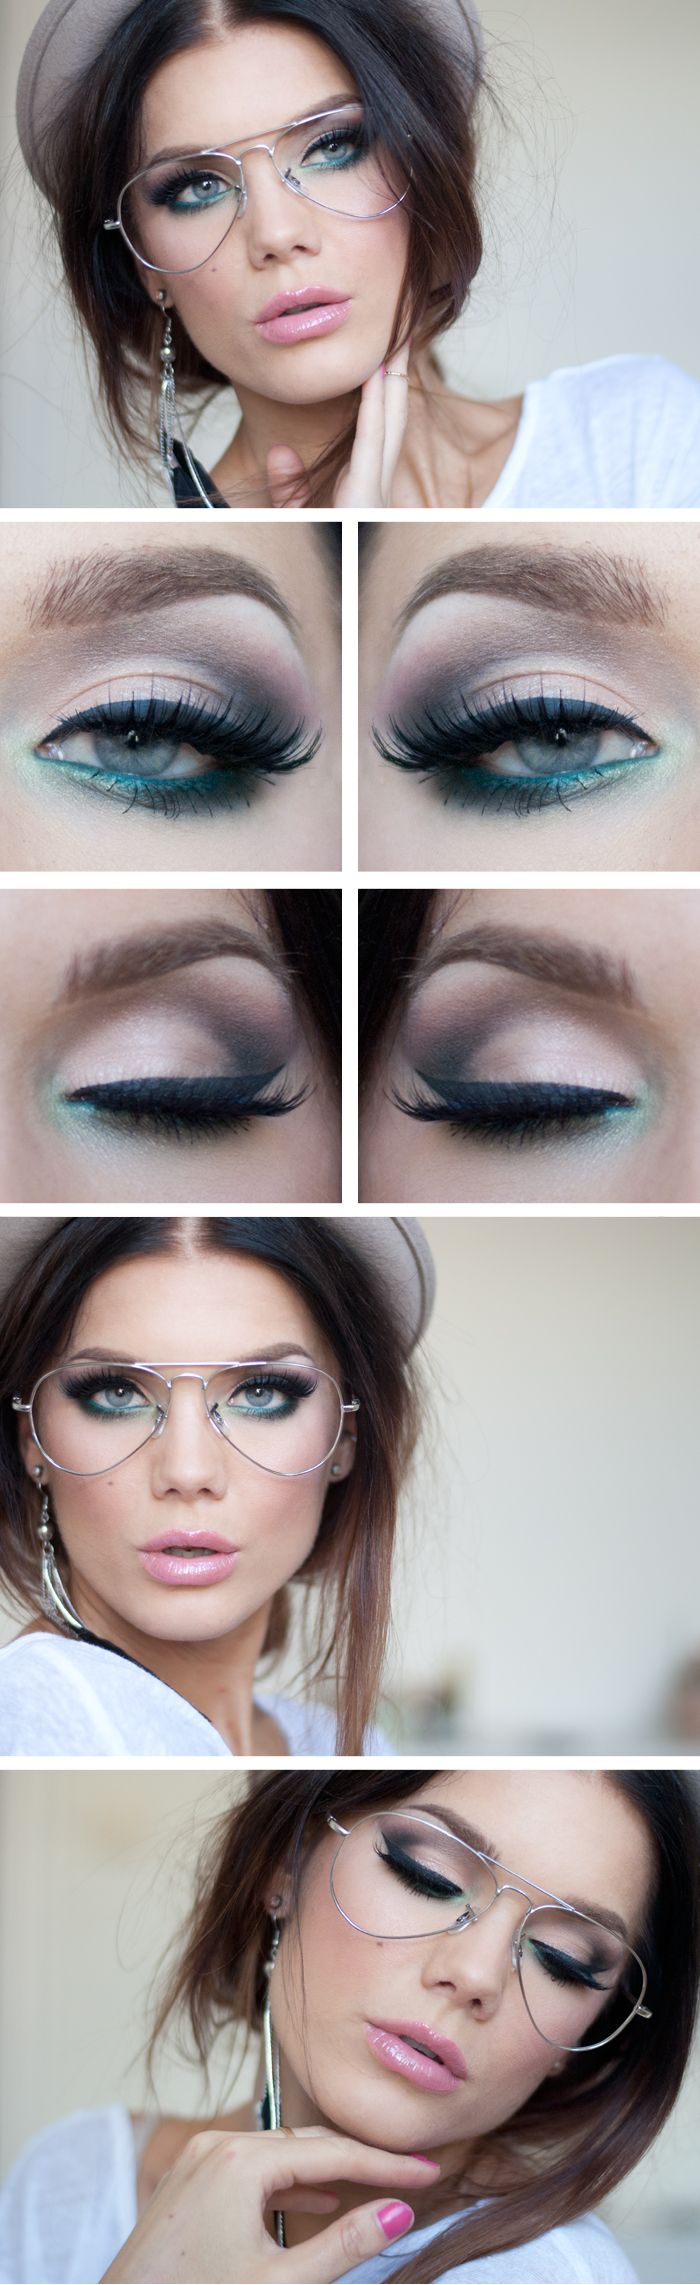 """Today's Look : """"Time Zone"""" -Linda Hallberg (beautiful smokey eye with an awesome teal smudged on lower lash line... paired with a light bubblegum pink. The glasses are a nice touch.)08/23/13"""